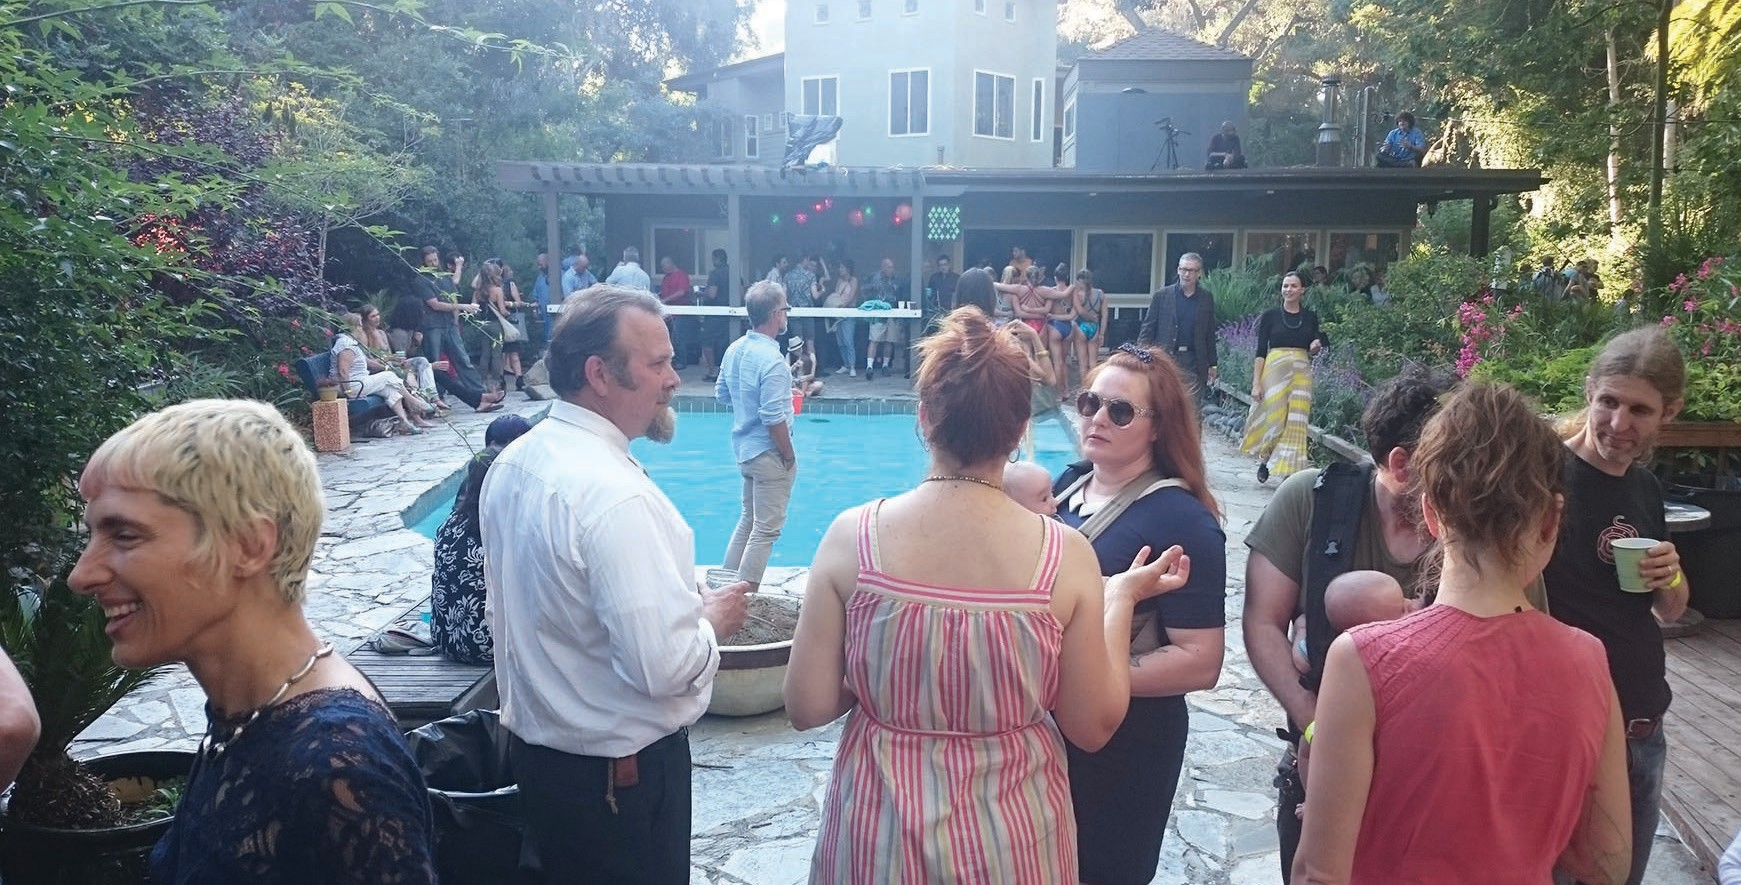 Poolside at the Felicita Grand Re-Opening.